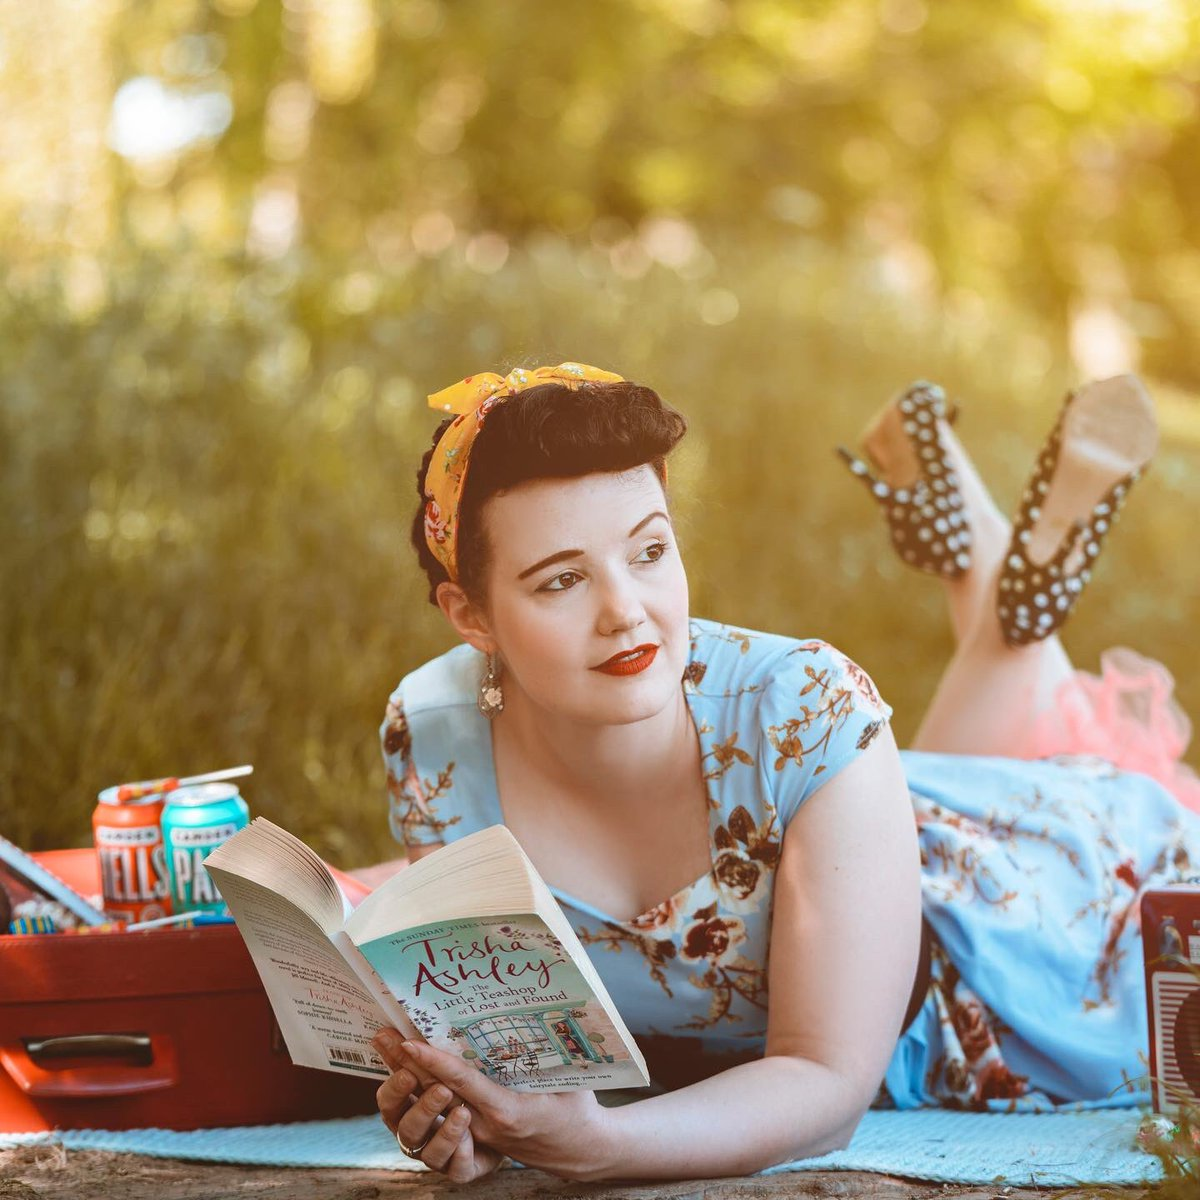 1940's picnic shoot. photography: Diversity Photography Model and HMUA: @laurenkmay  dress:@SHEIN_official shoes:@PhaseEightPR  headscarf:@COSYCLUB  #model #actorlife #1940sfashion #scoutme #SocialDistancing #picnic #britishcountrysidepic.twitter.com/g9ADZhn3k7